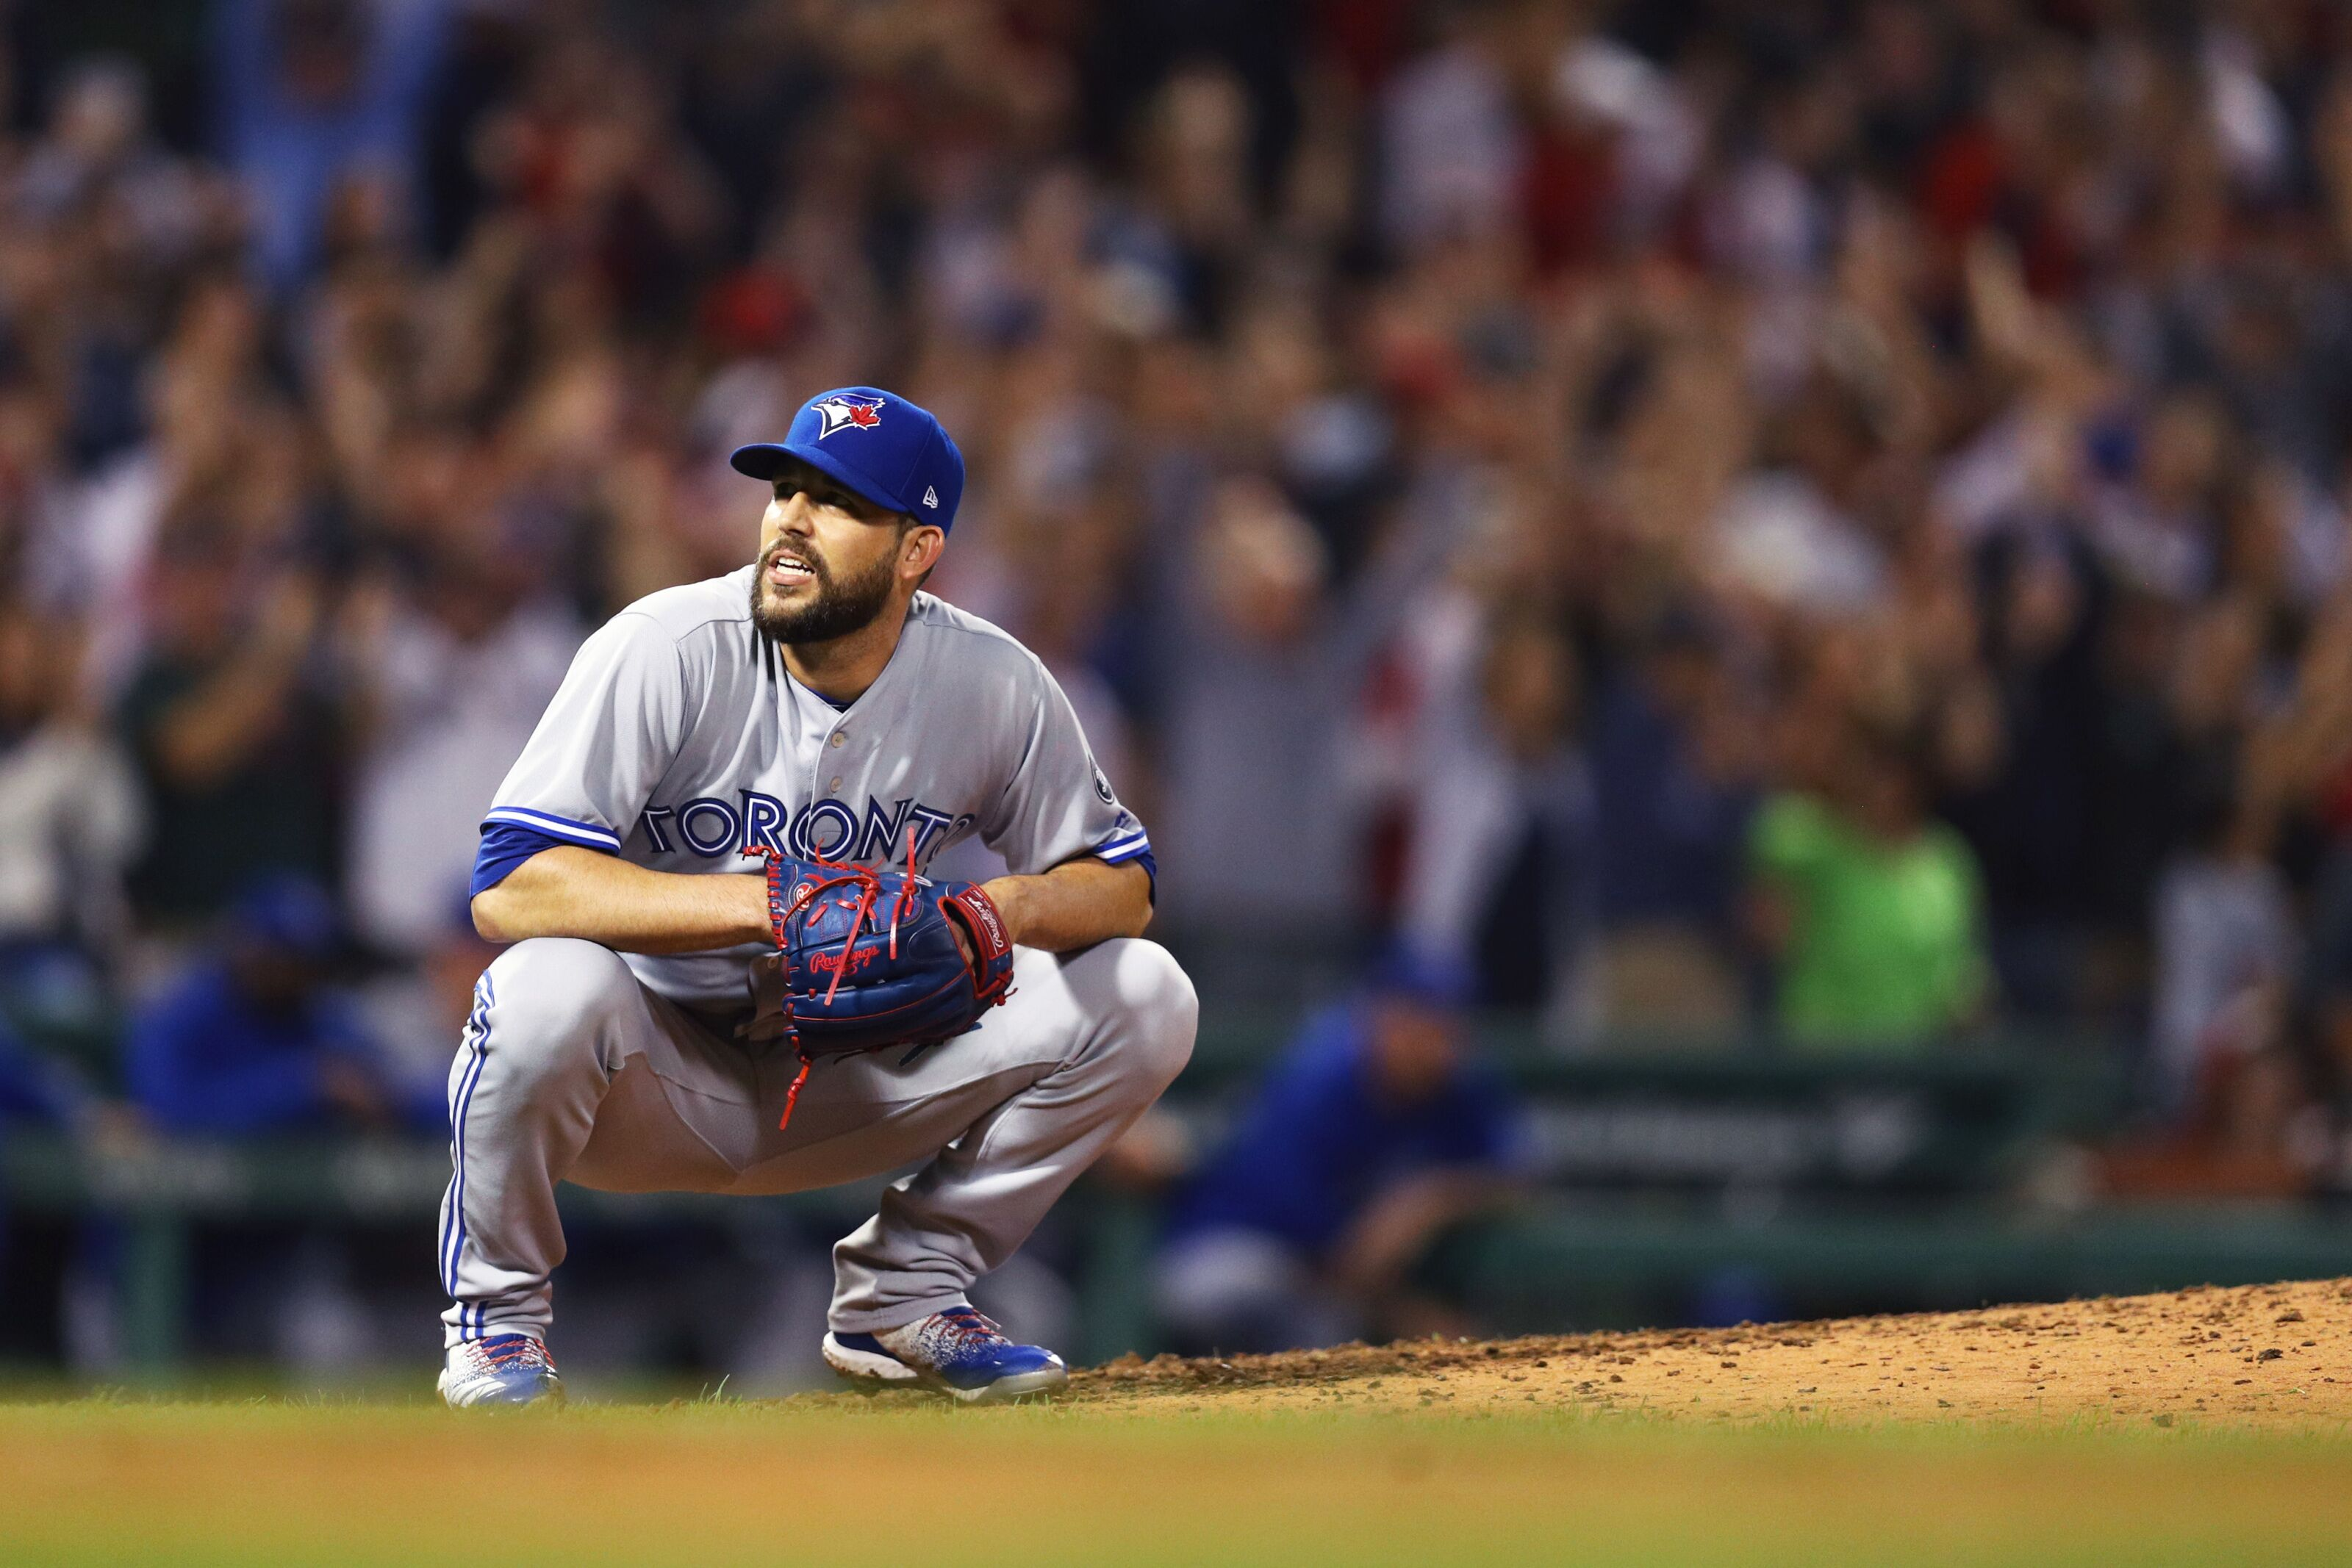 Mariners search for bullpen help could lead them to Ryan Tepera